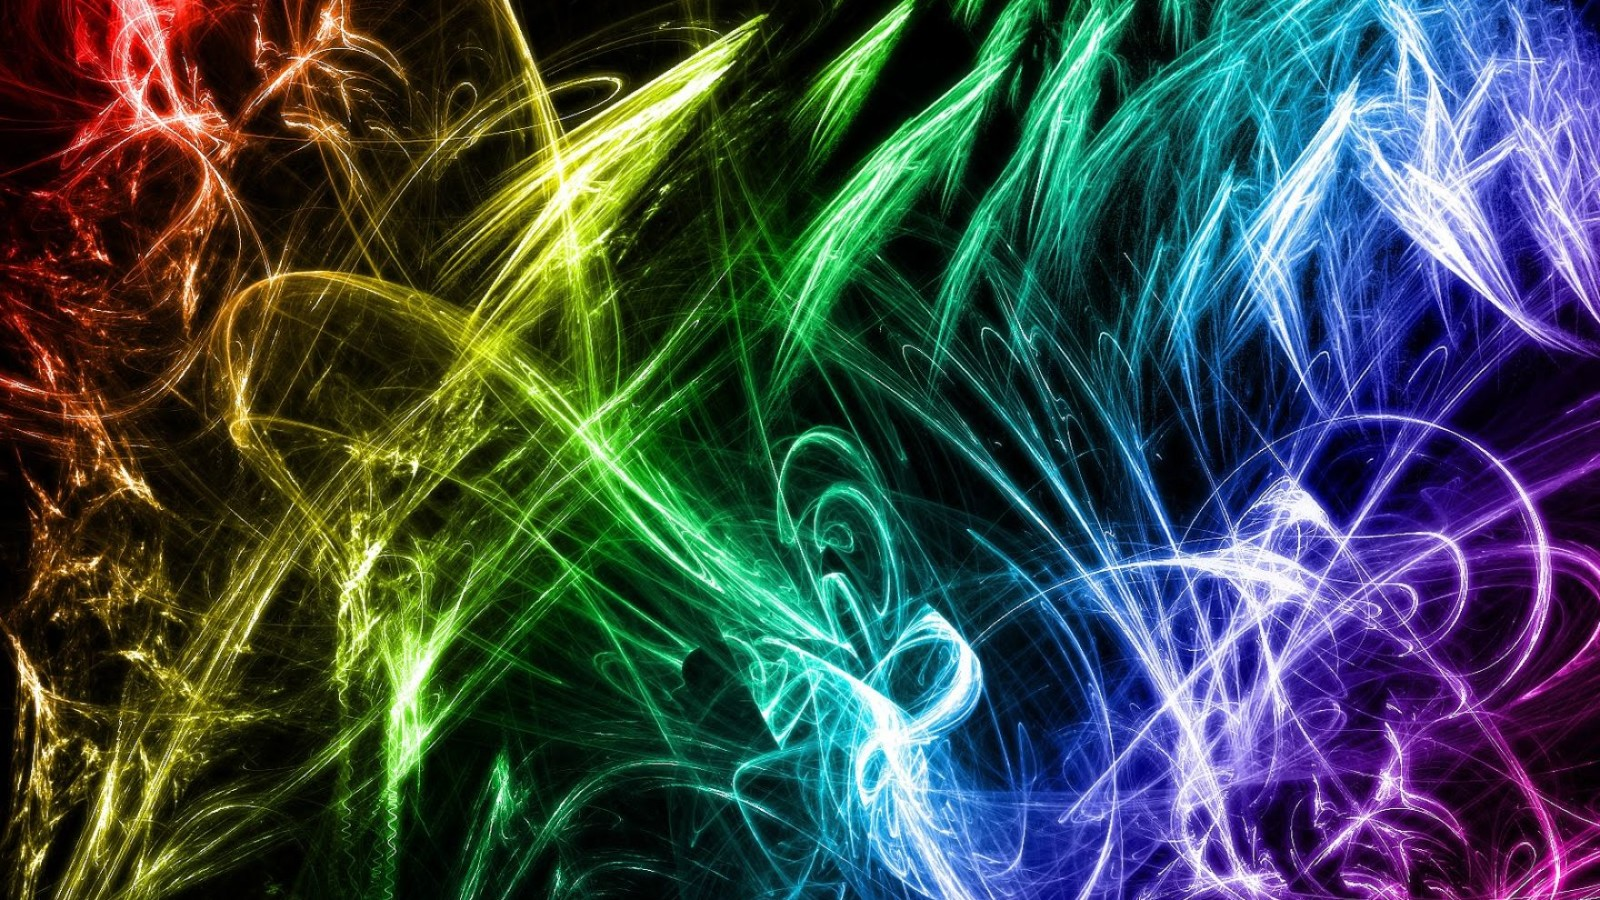 Good Wallpaper Mac Colorful - Colorful-Cool-Abstract-Backgrounds-Wallpaper-1600x900  Best Photo Reference_597049.jpg